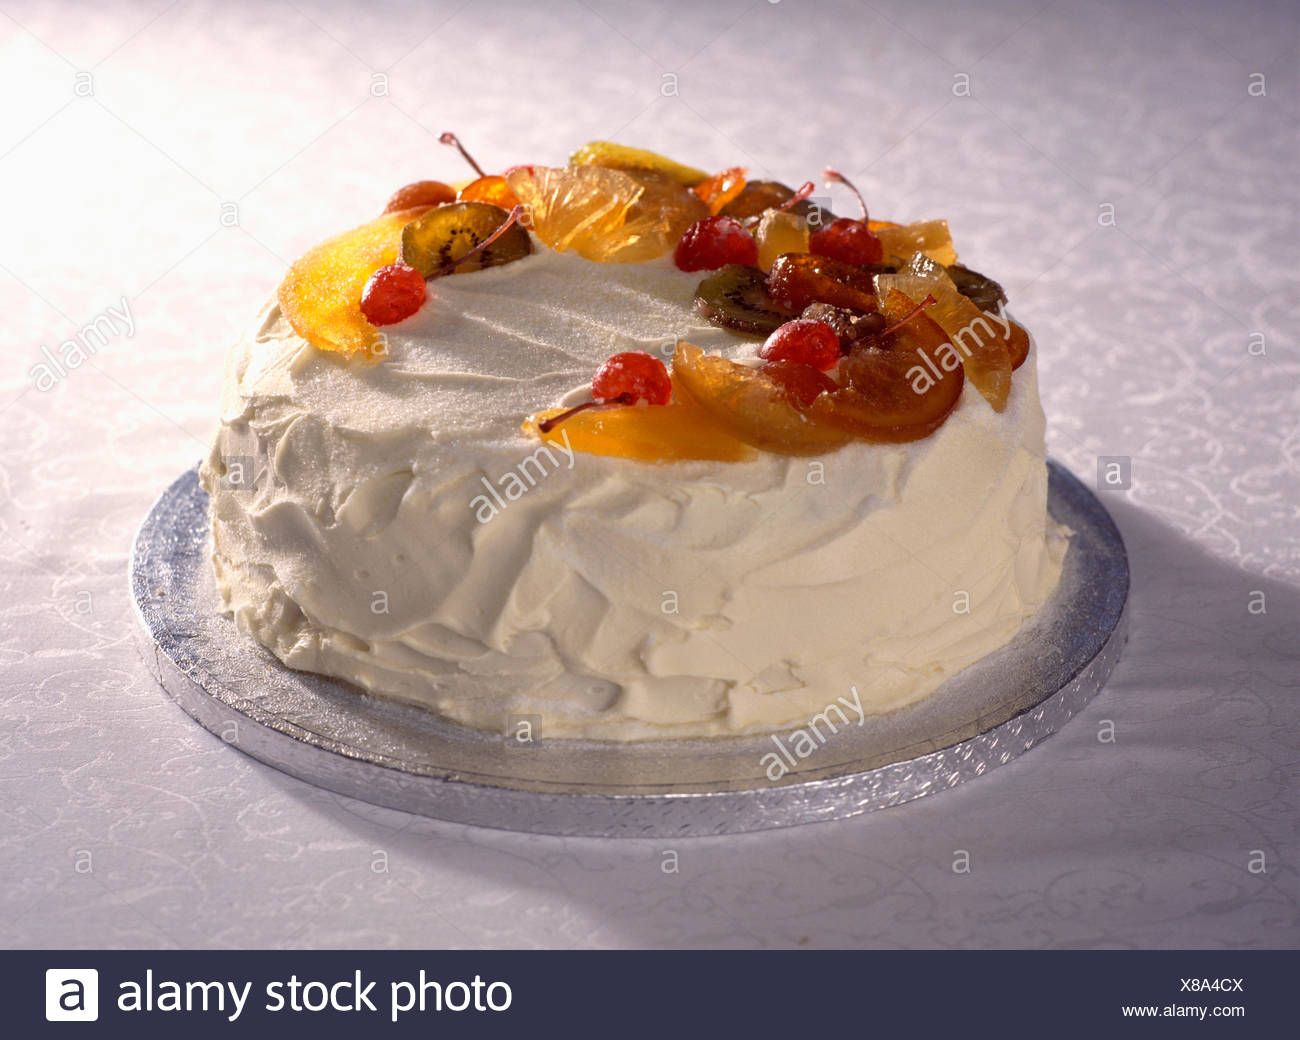 Close Up Of Iced Birthday Cake Decorated With Candied Fruit Stock